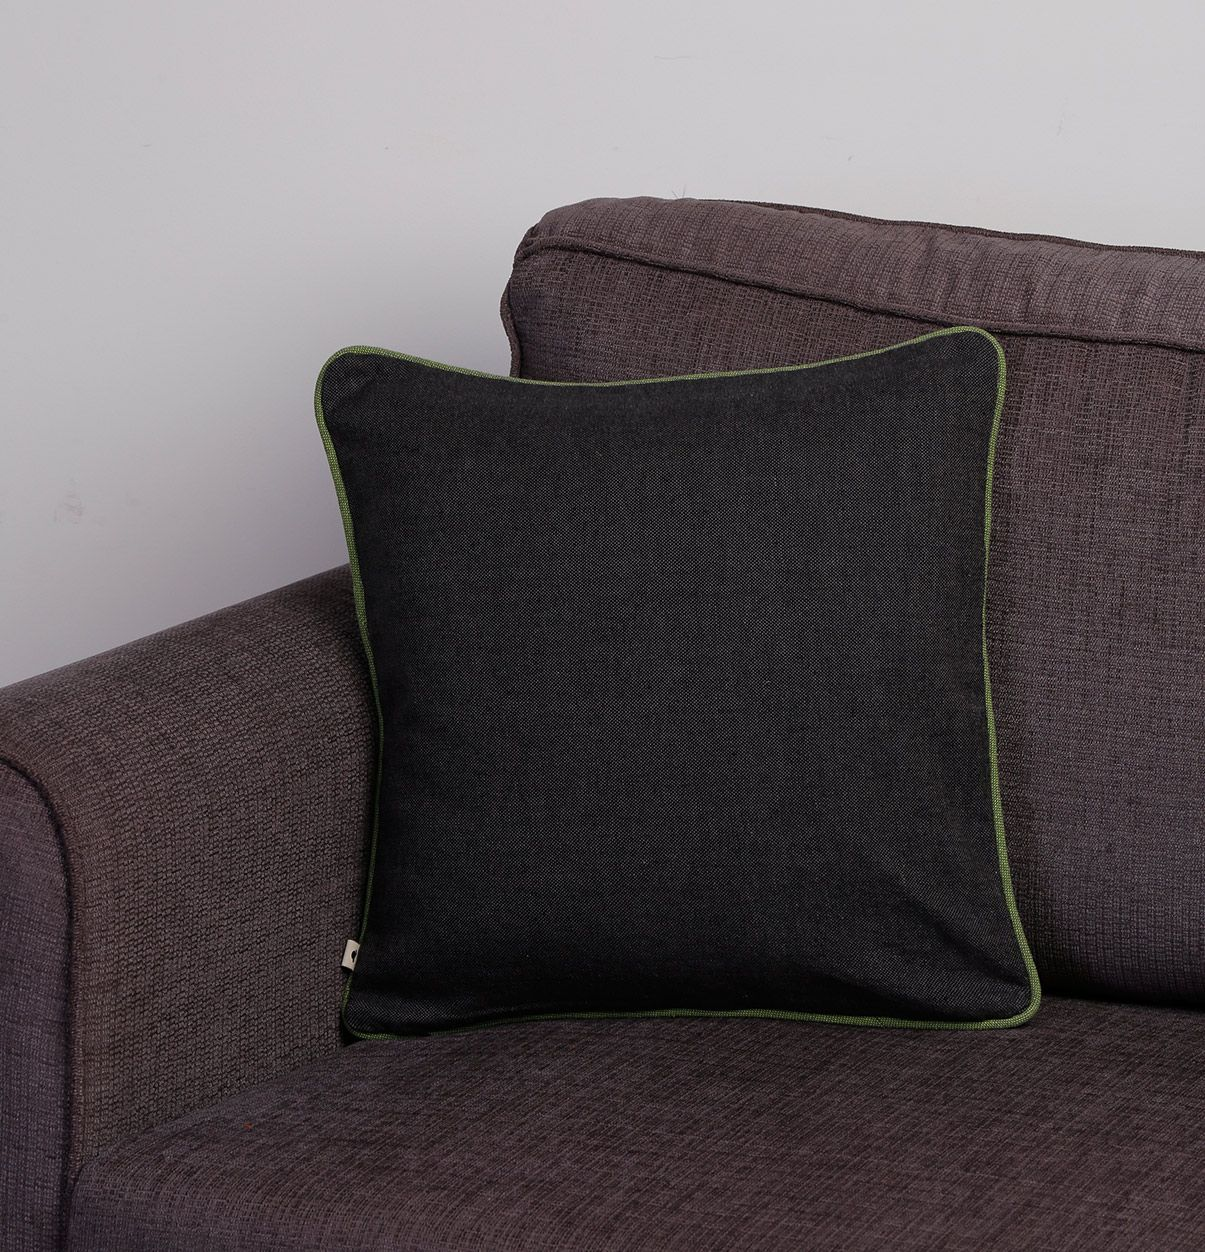 Grey green cushion cover uxu lift the look of the cushions in